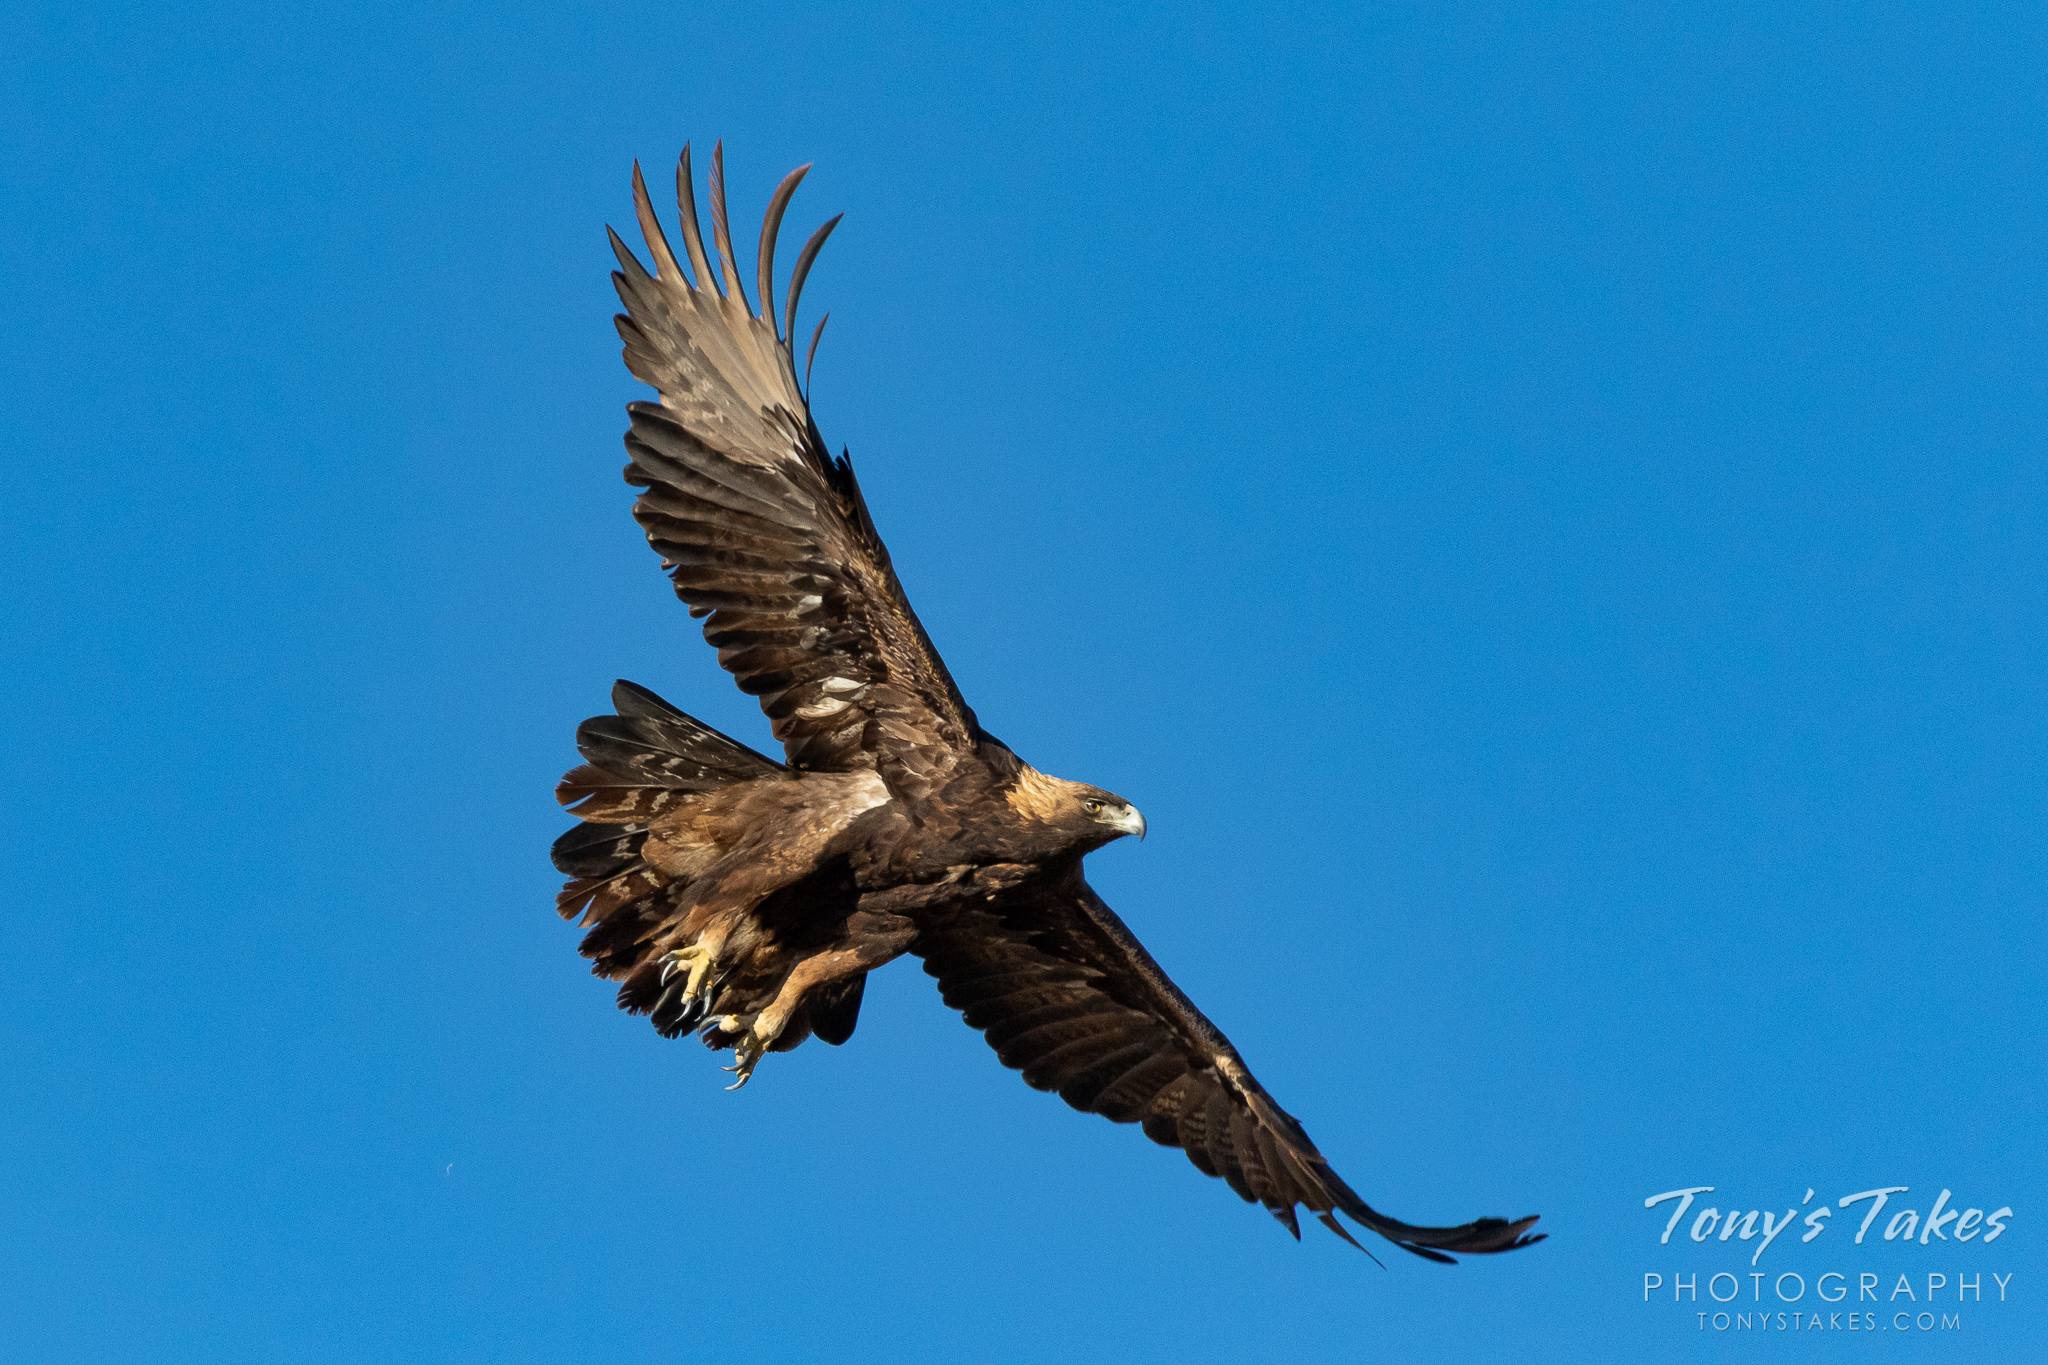 Golden eagle takes to the skies